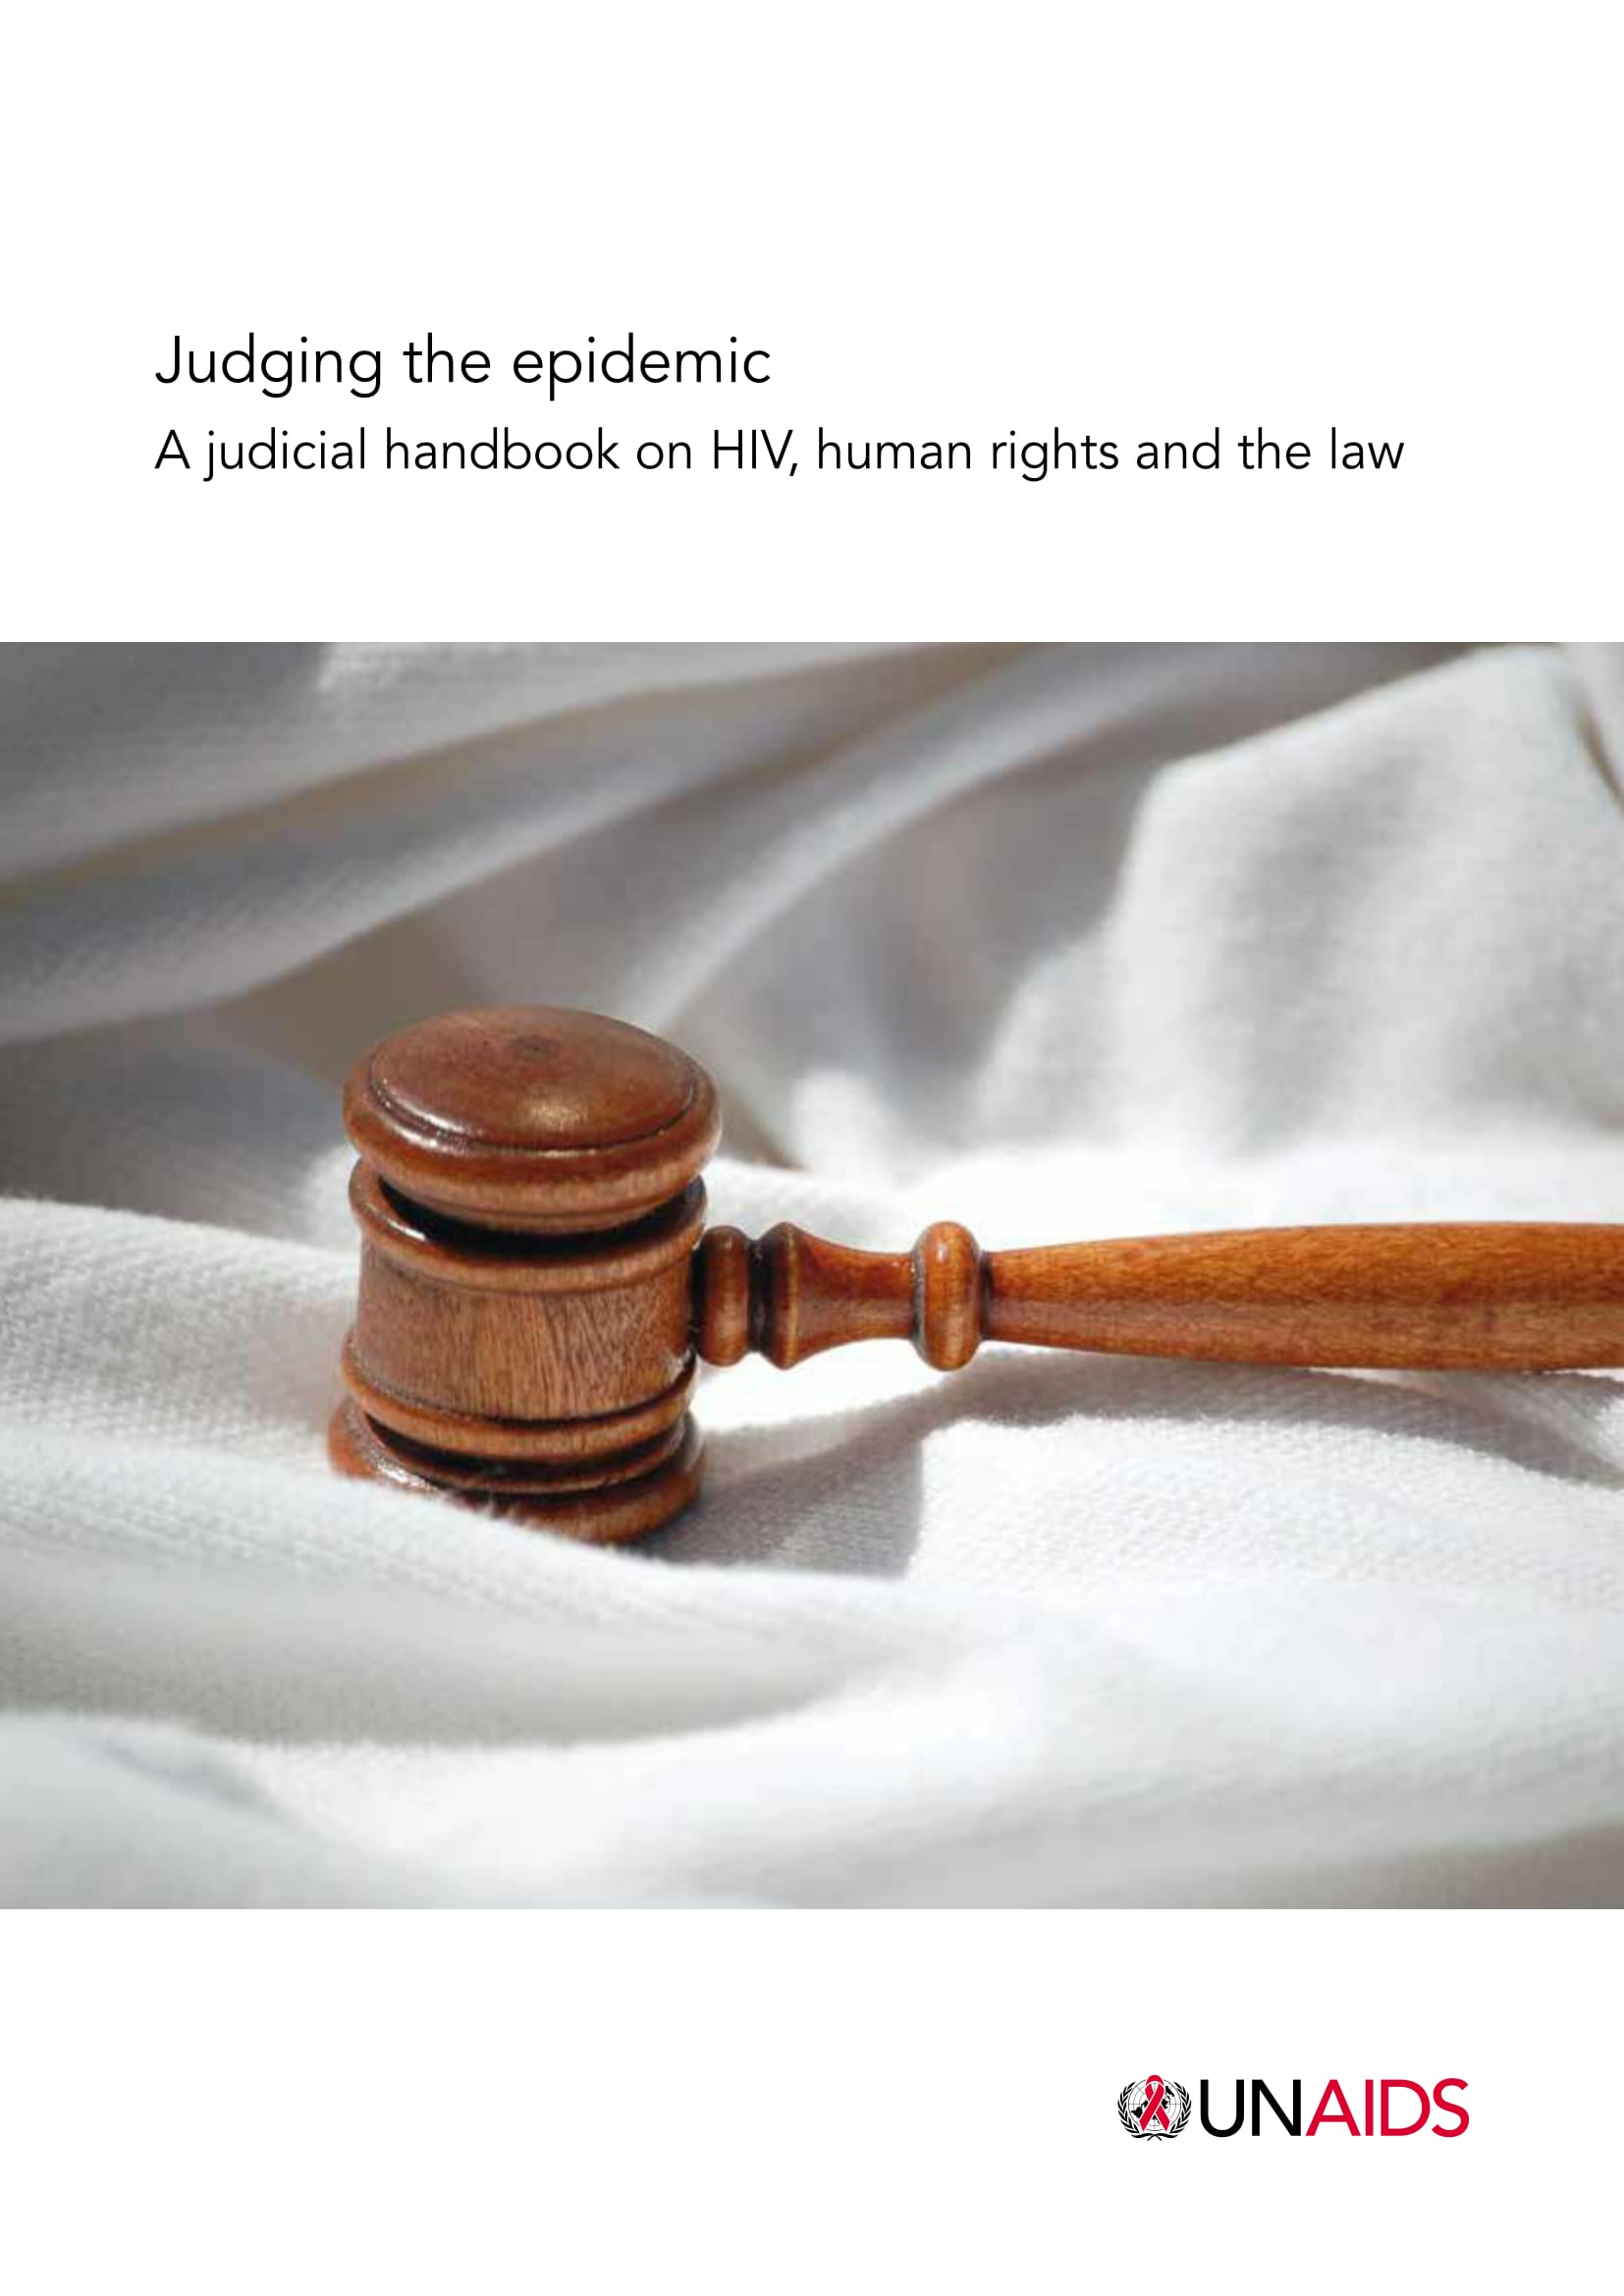 Judging the epidemic: A judicial handbook on HIV, human rights and the law